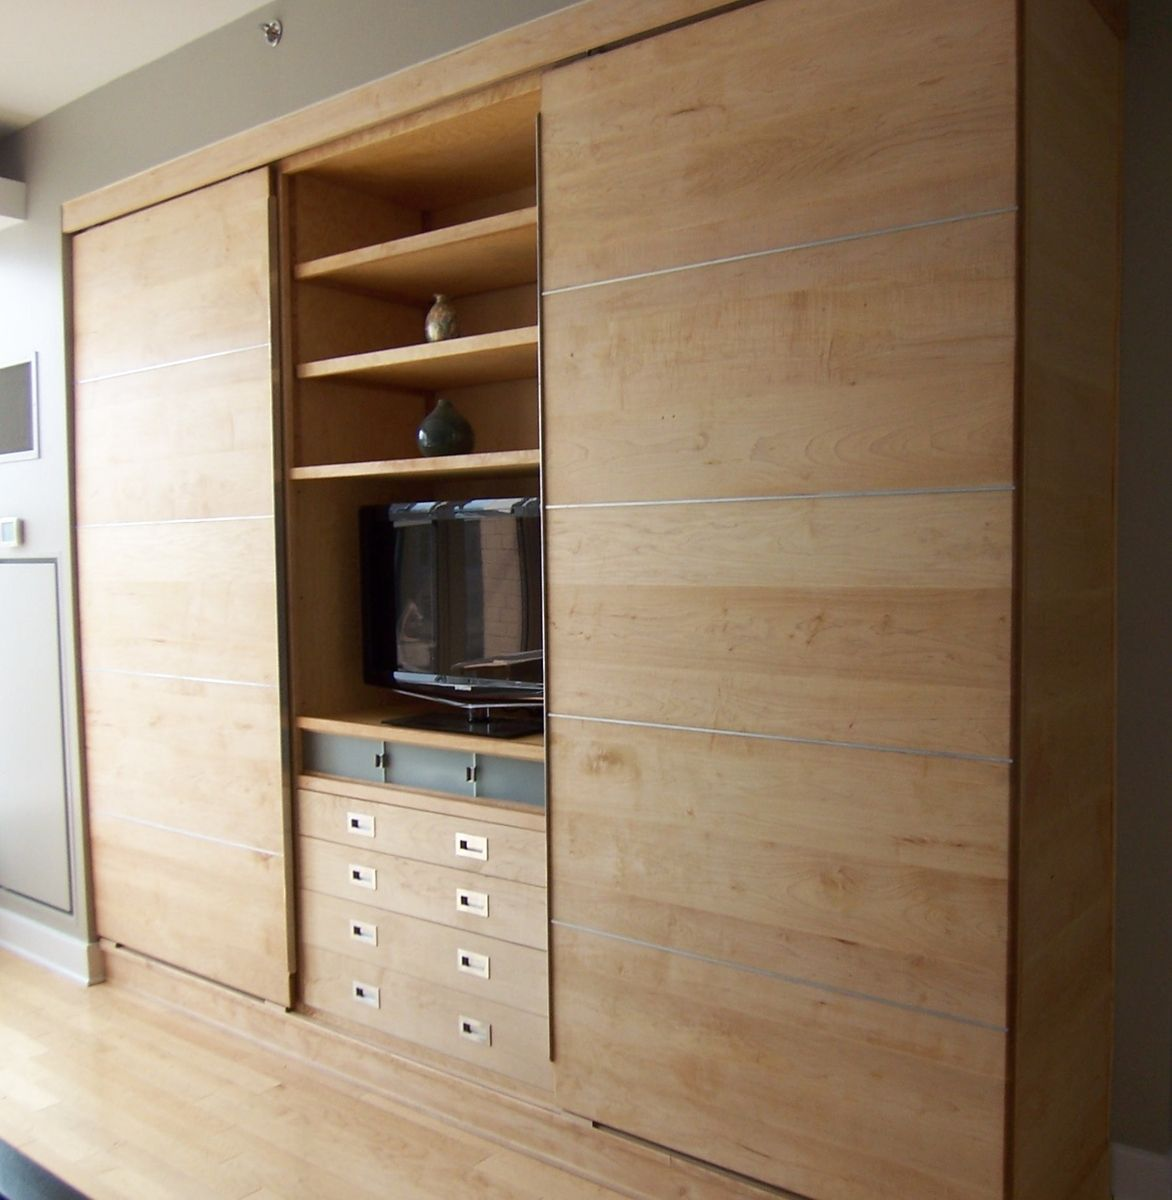 Awesome Bedroom Built In Unit Design Ideas Wall With Light Brown Shelves Media Centre Combination Storage Cabinet